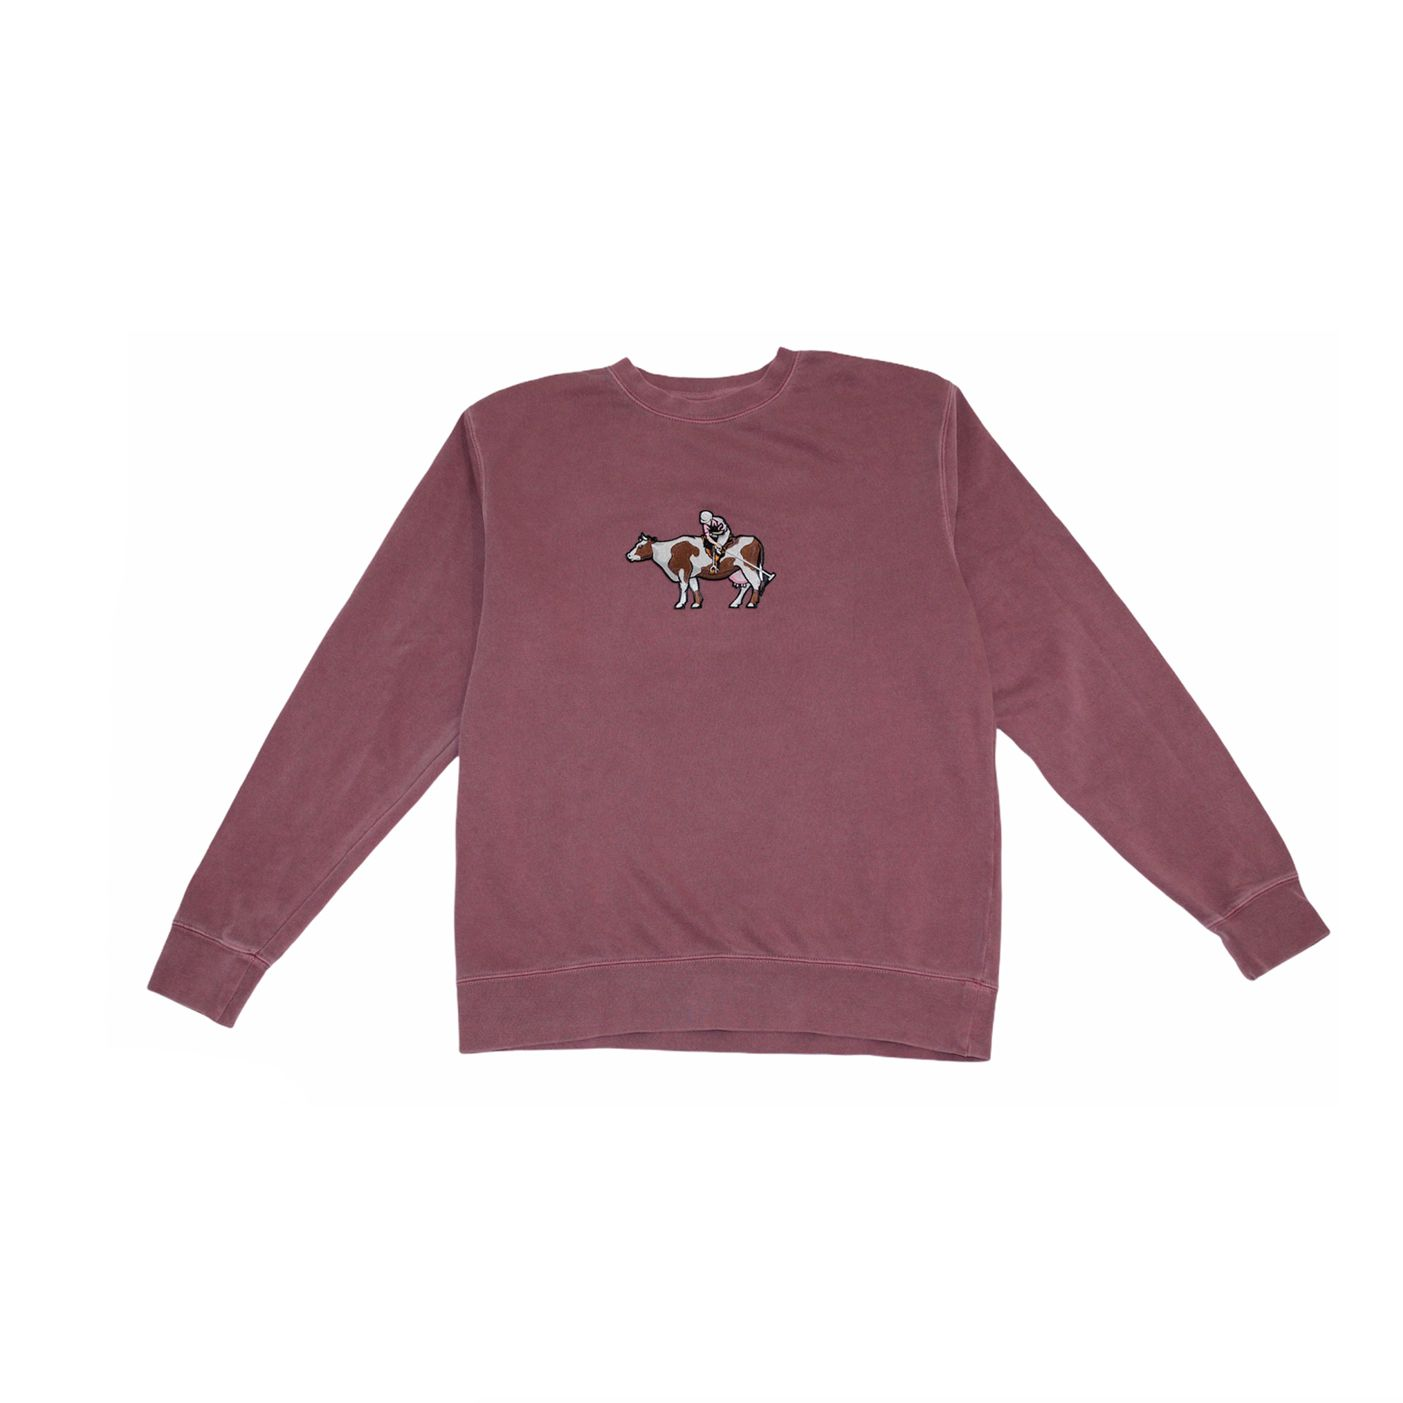 SoYou Clothing Country Club Crewneck in Red